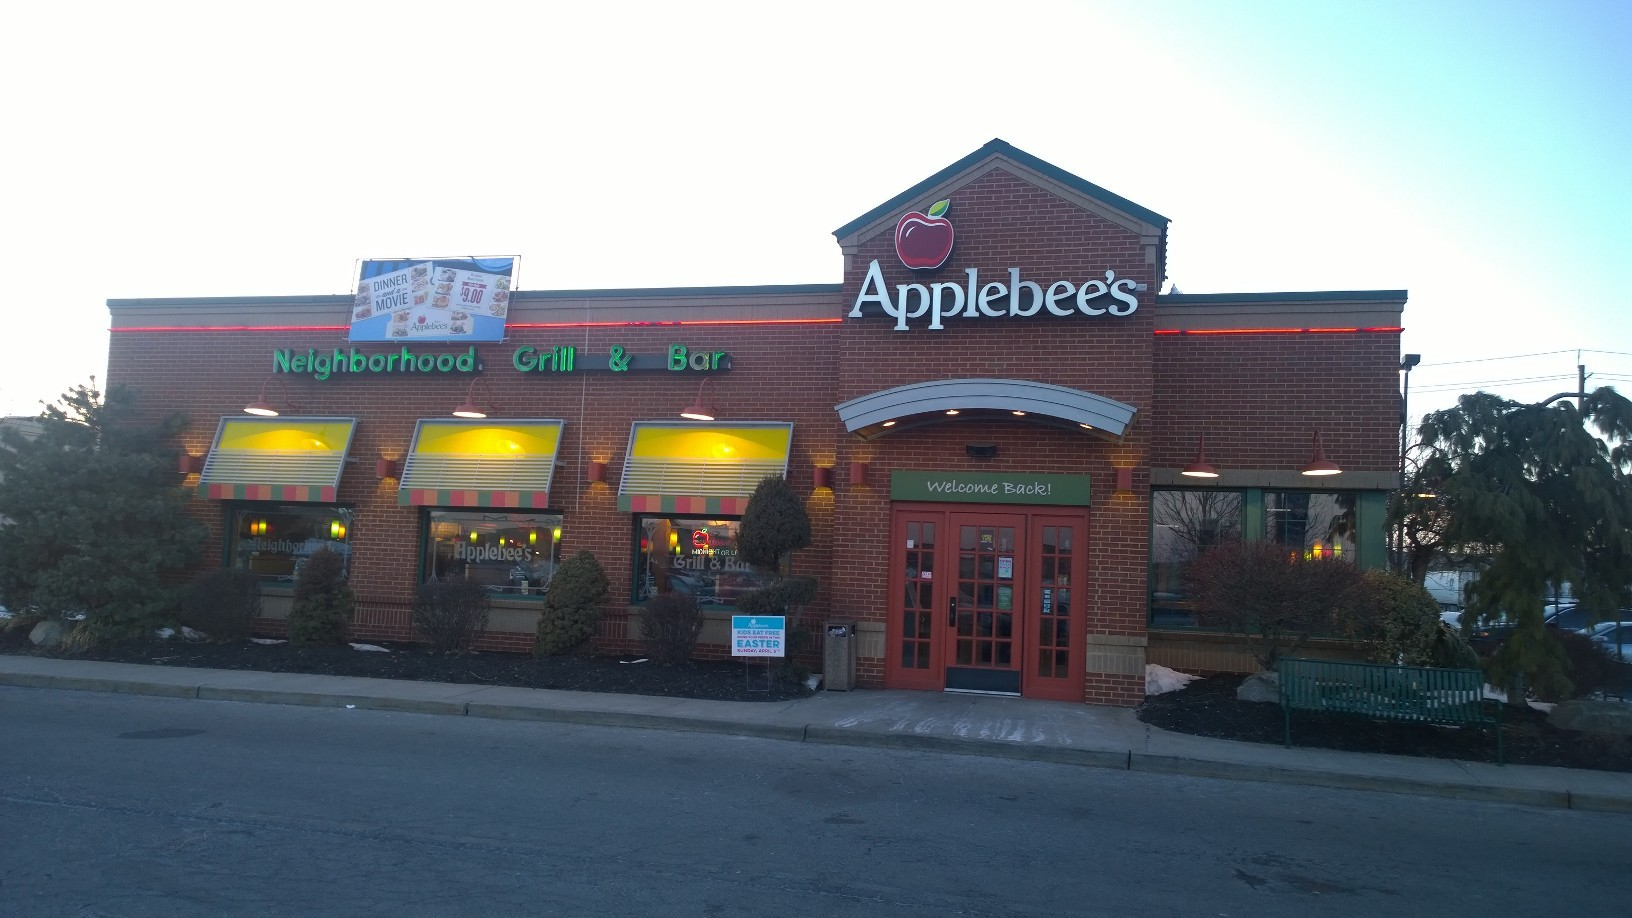 How to use a Applebee's coupon